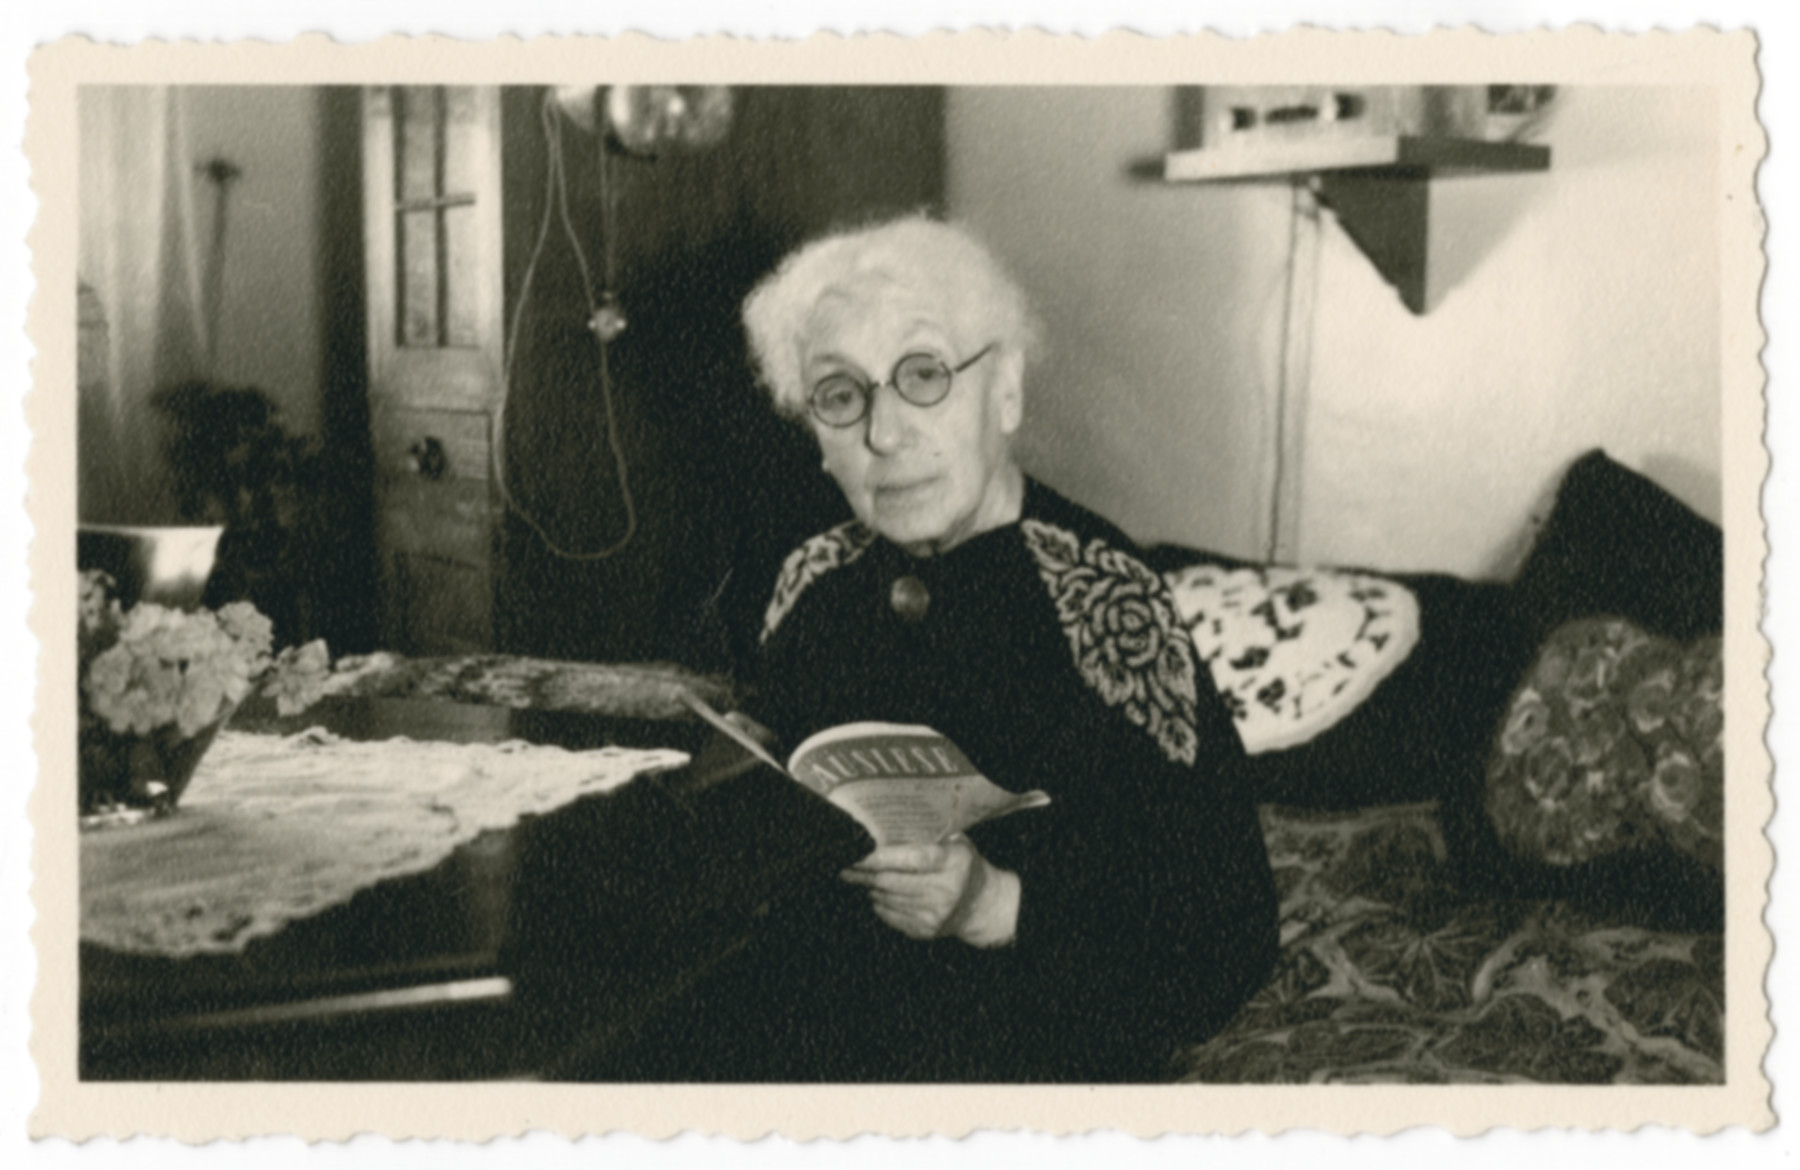 Regina (nee Kottlarzig) Brieger reads a book in her apartment in the Jewish Hospital in Iranischestrasse, Berlin iwhere Ilse visited her.             Regina Brieger  survived incarceration in Theresienstadt where she had worked as a nurse, albeit without proper medication or supplies.